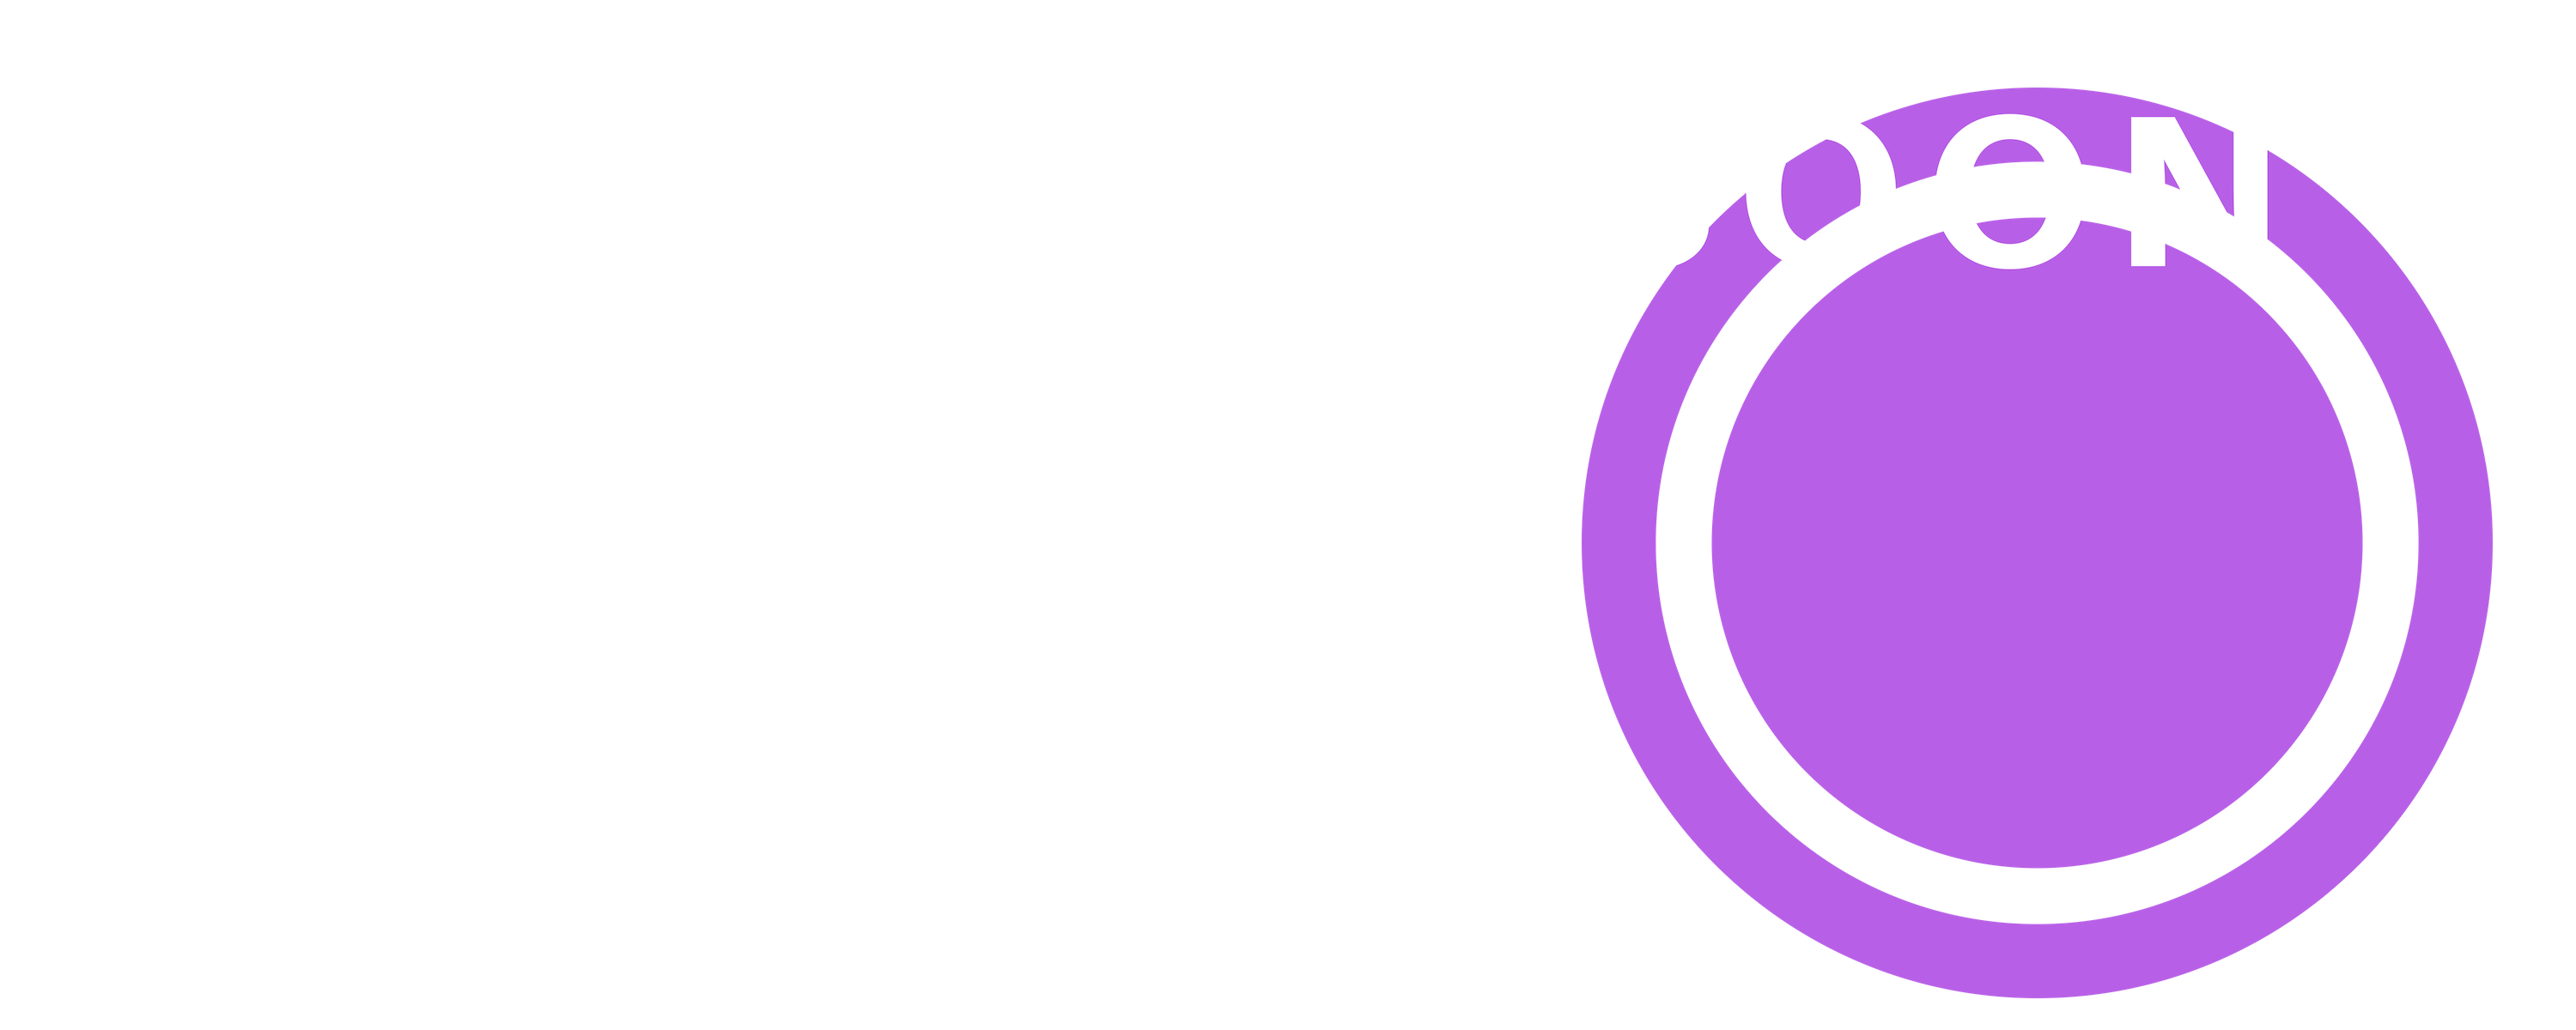 Monsoon 20simplecast 20logo